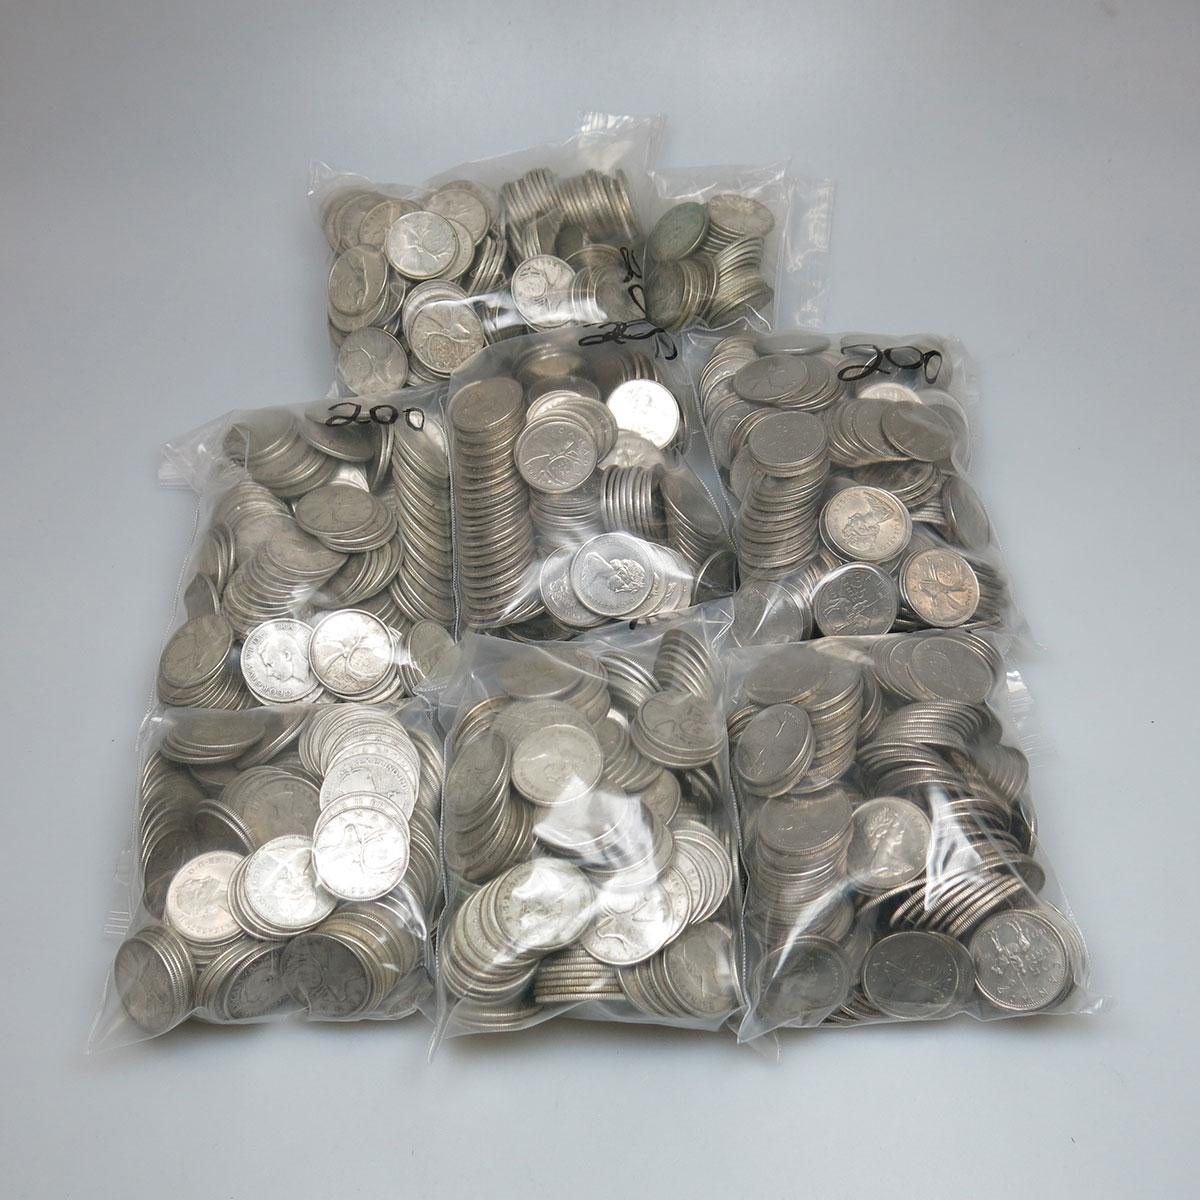 789 Silver Canadian Quarters